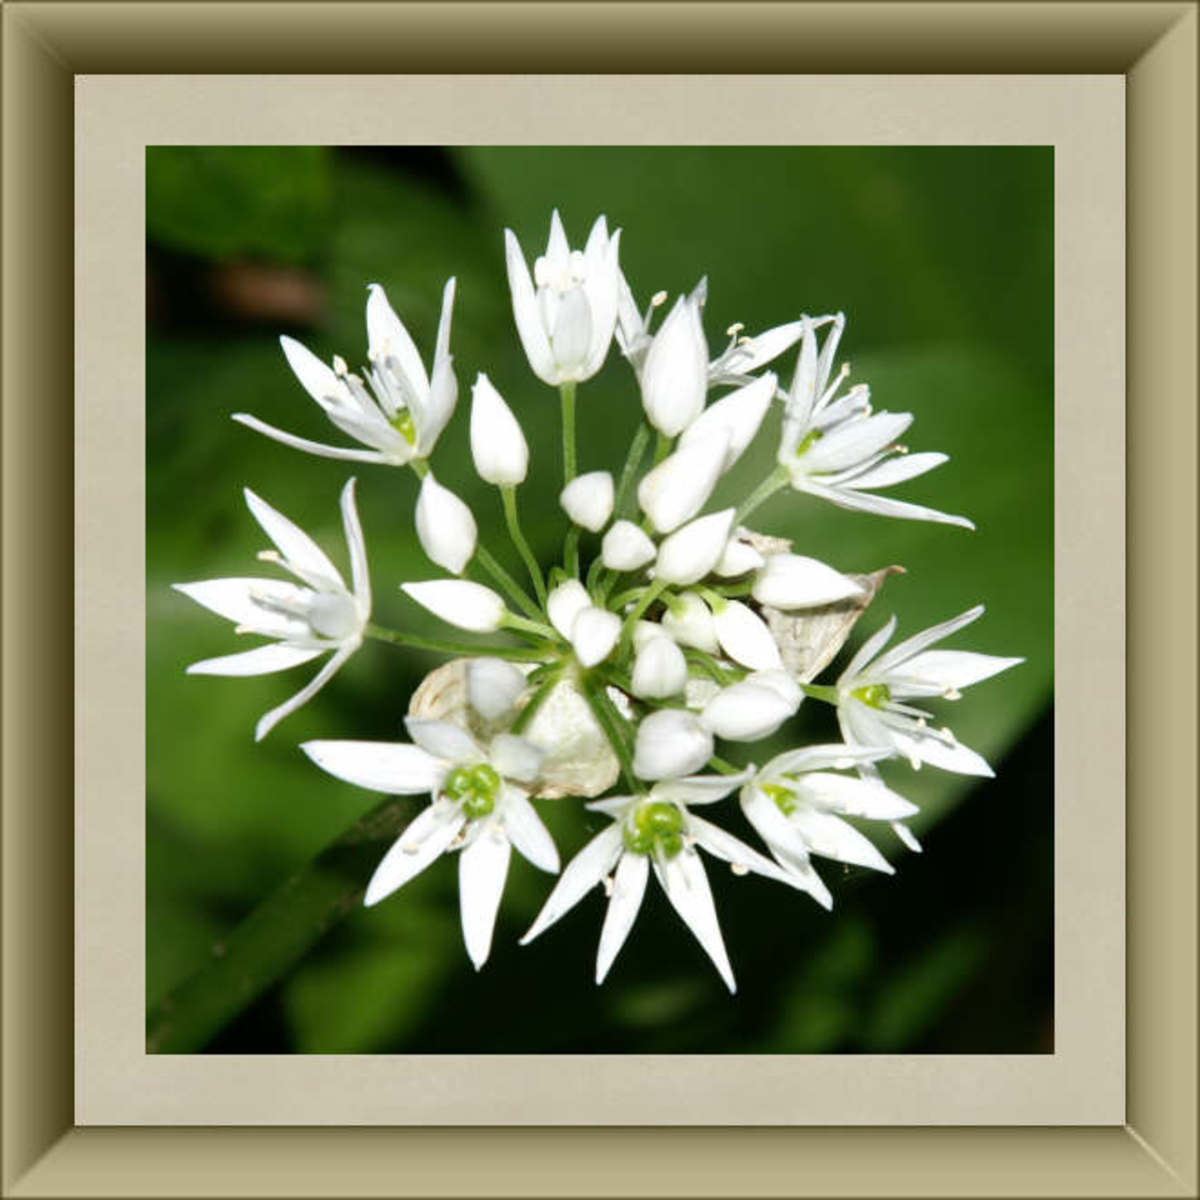 Garlic Blossoms